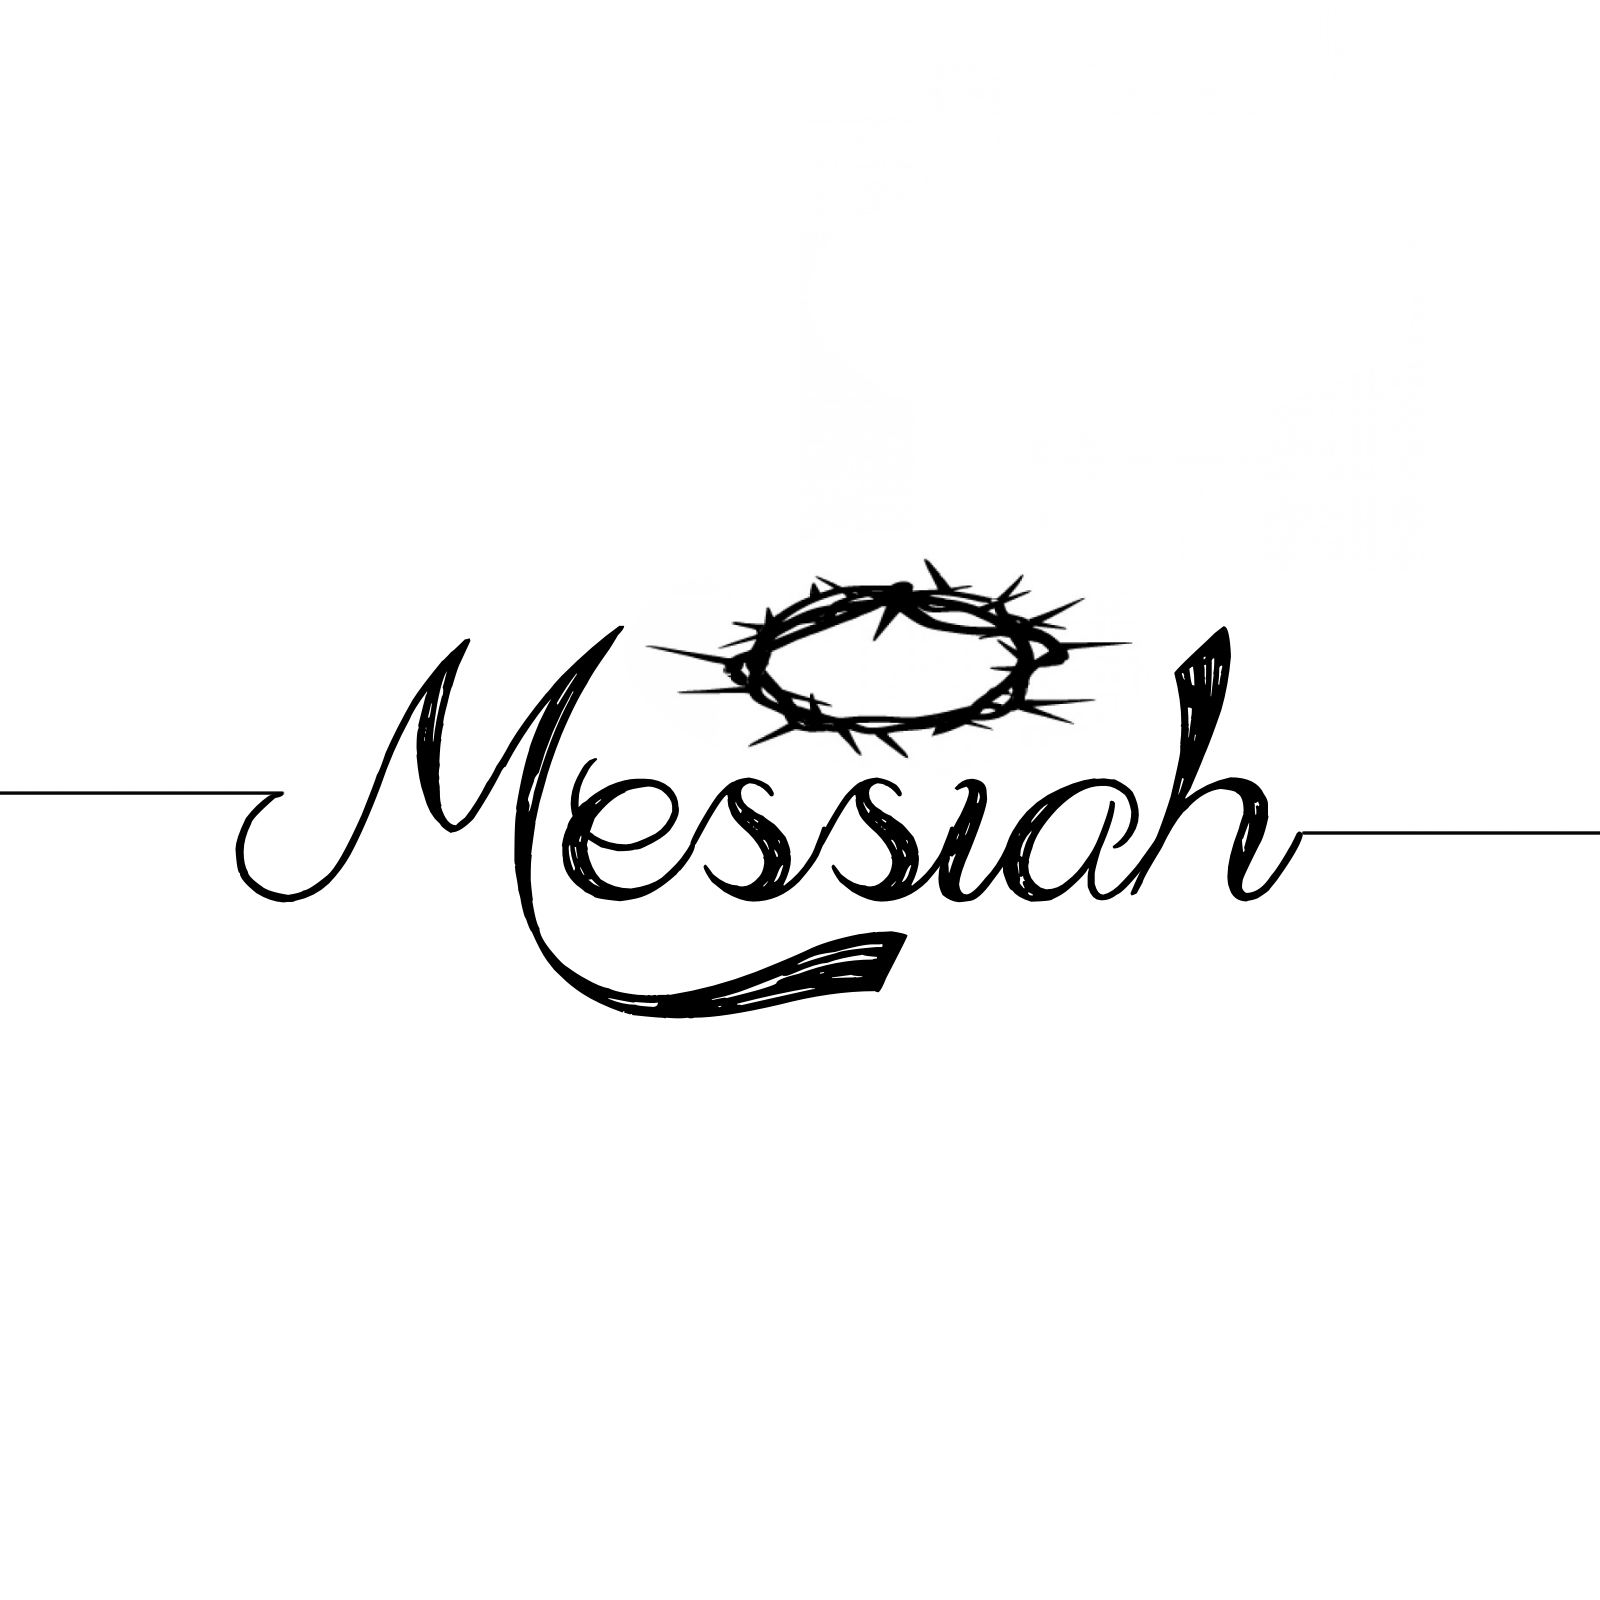 12.21.14 Amazing Messiah: The Present of Presence